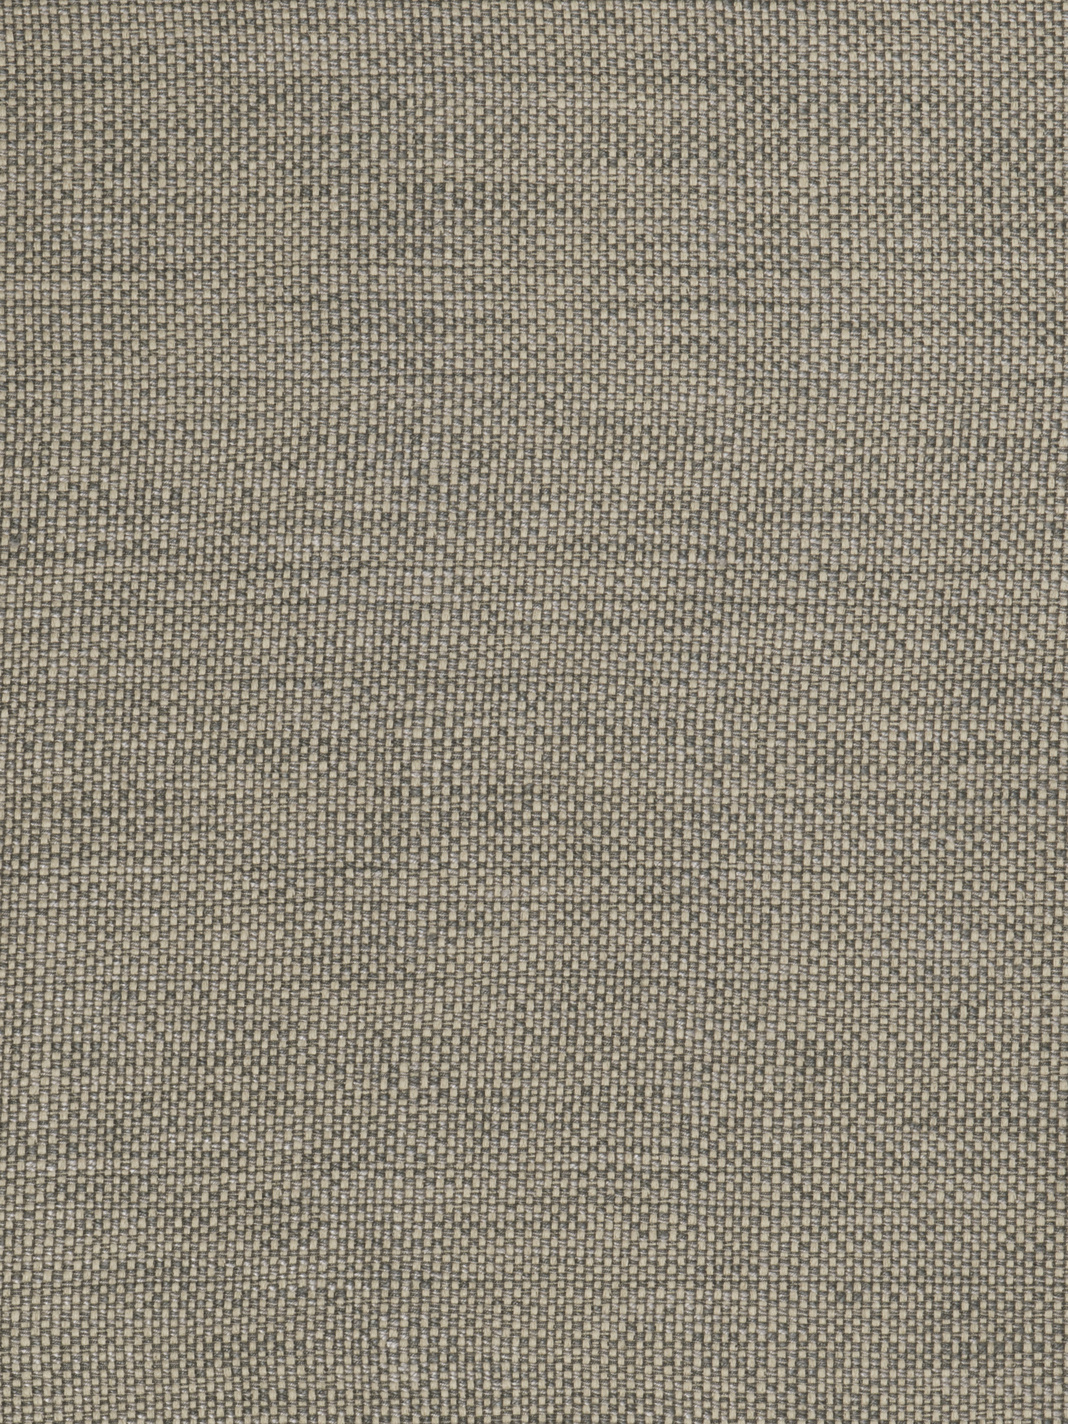 Home Decor 8x8 Fabric Swatch-Jaclyn Smith Archangel Graphite